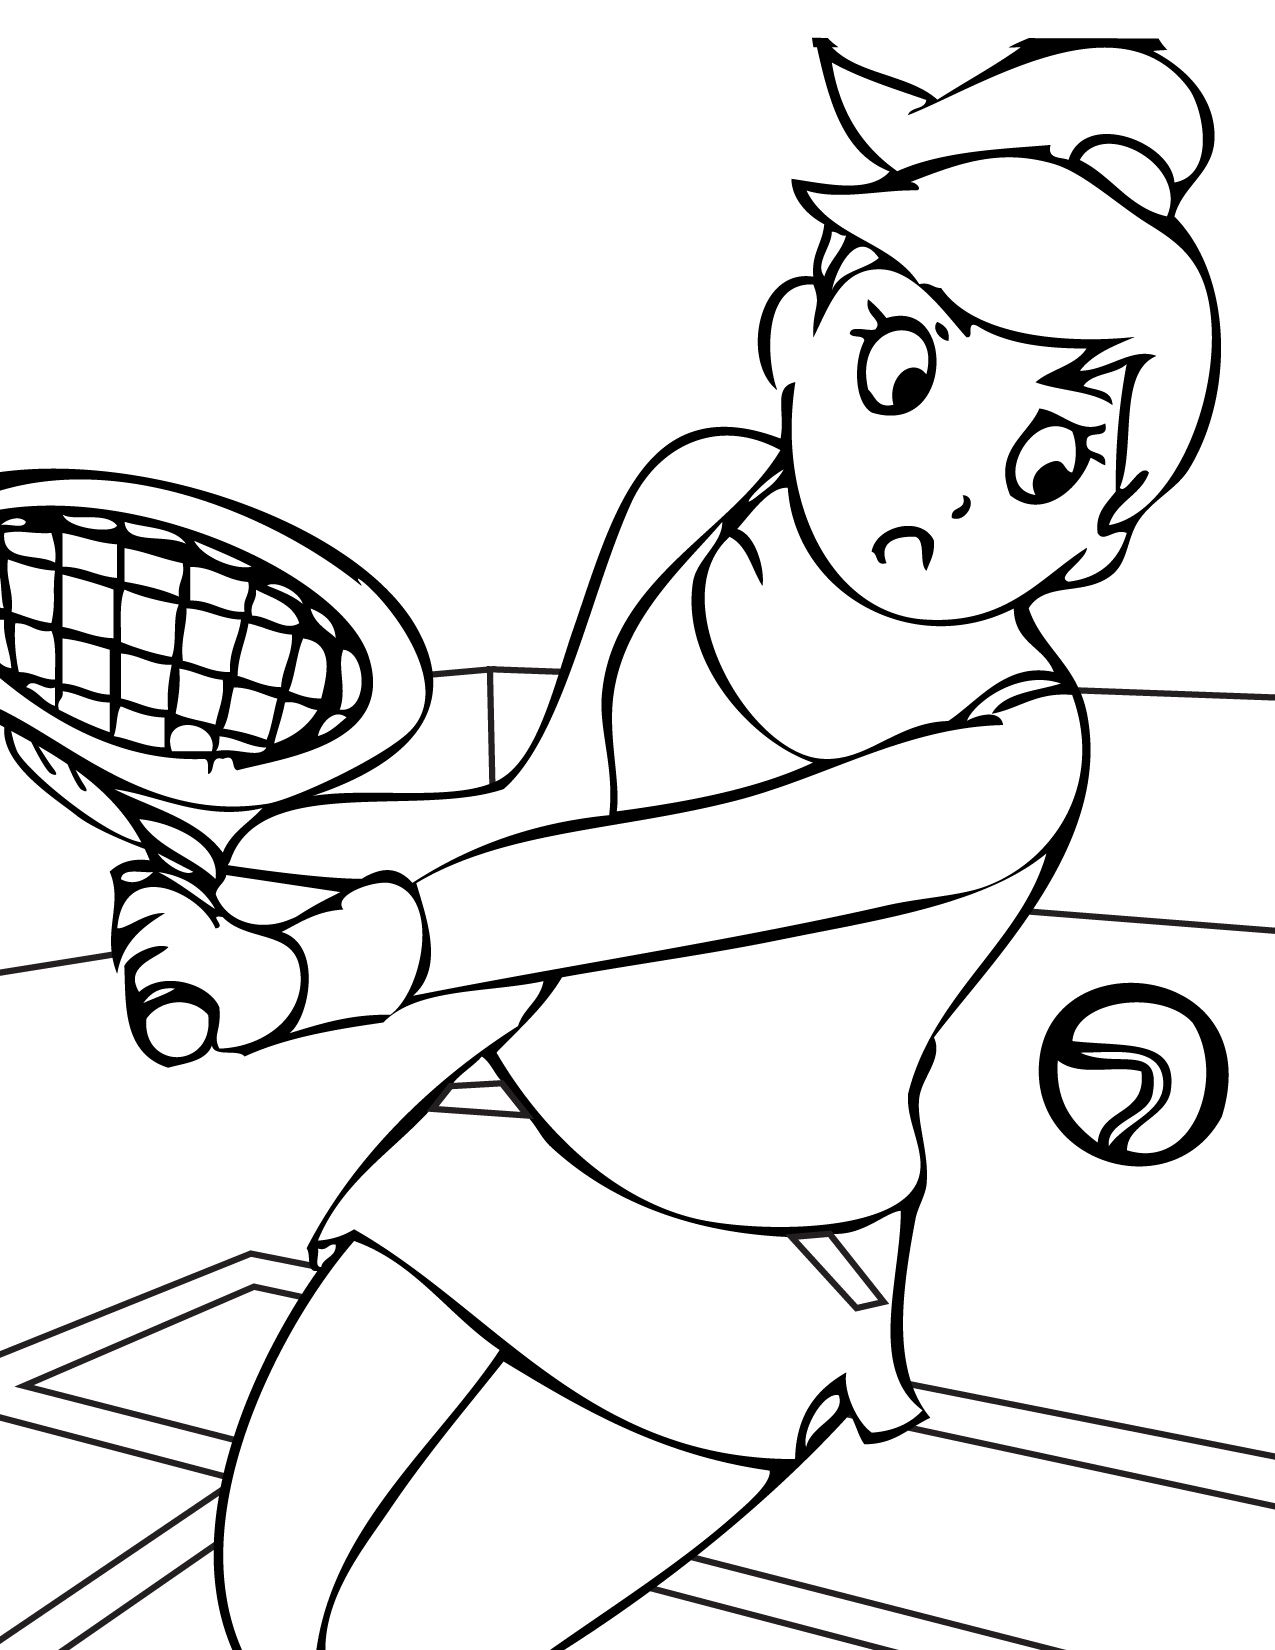 sports printable coloring pages - Sports Drawing Pictures